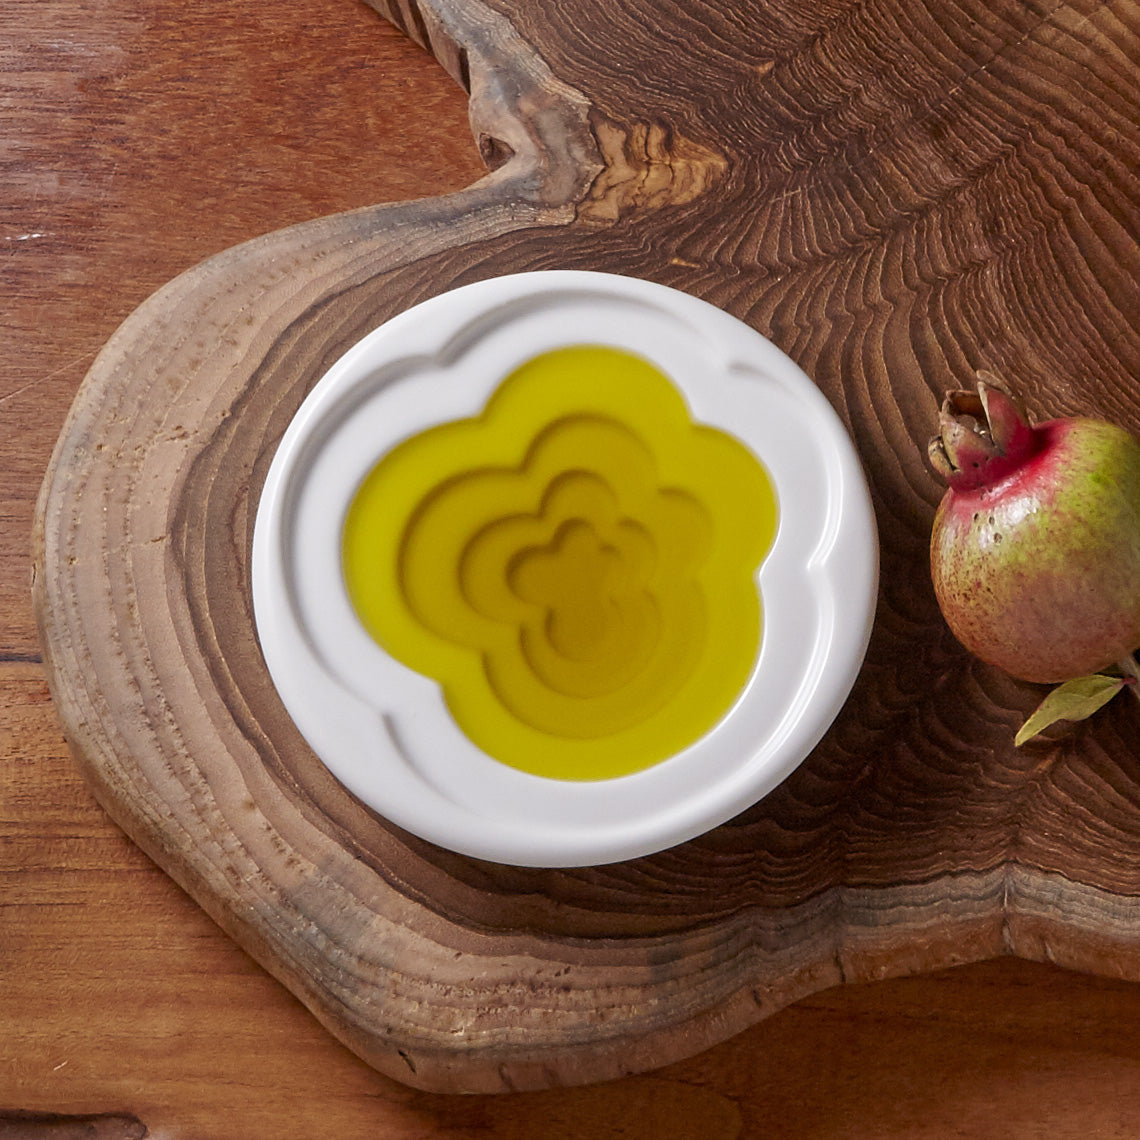 Cloud Olive Oil Dipping Dish